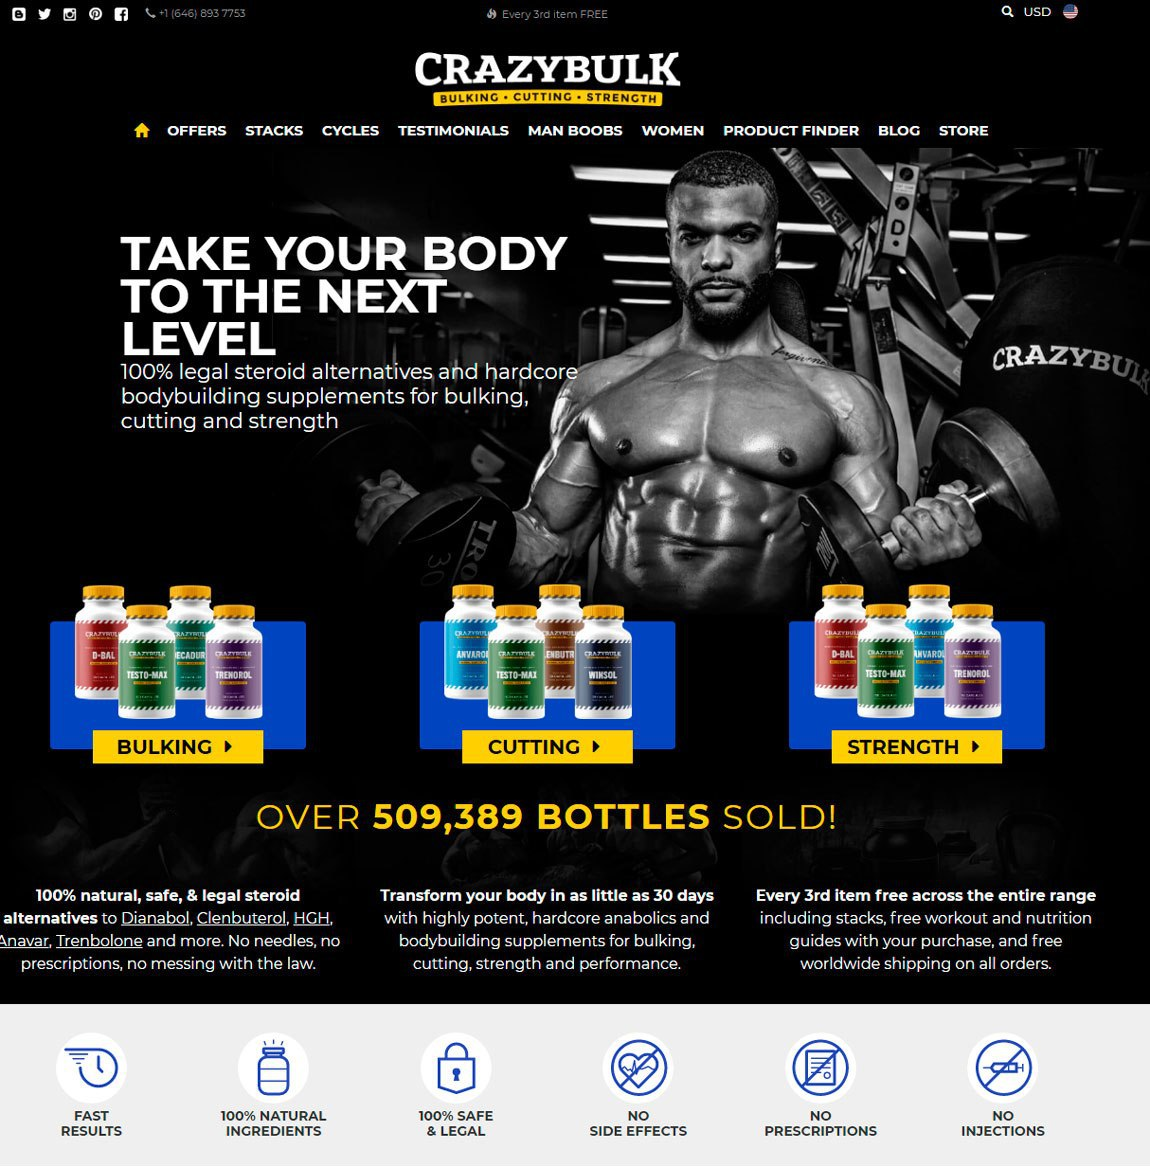 Is steroids-usa.org a legit site